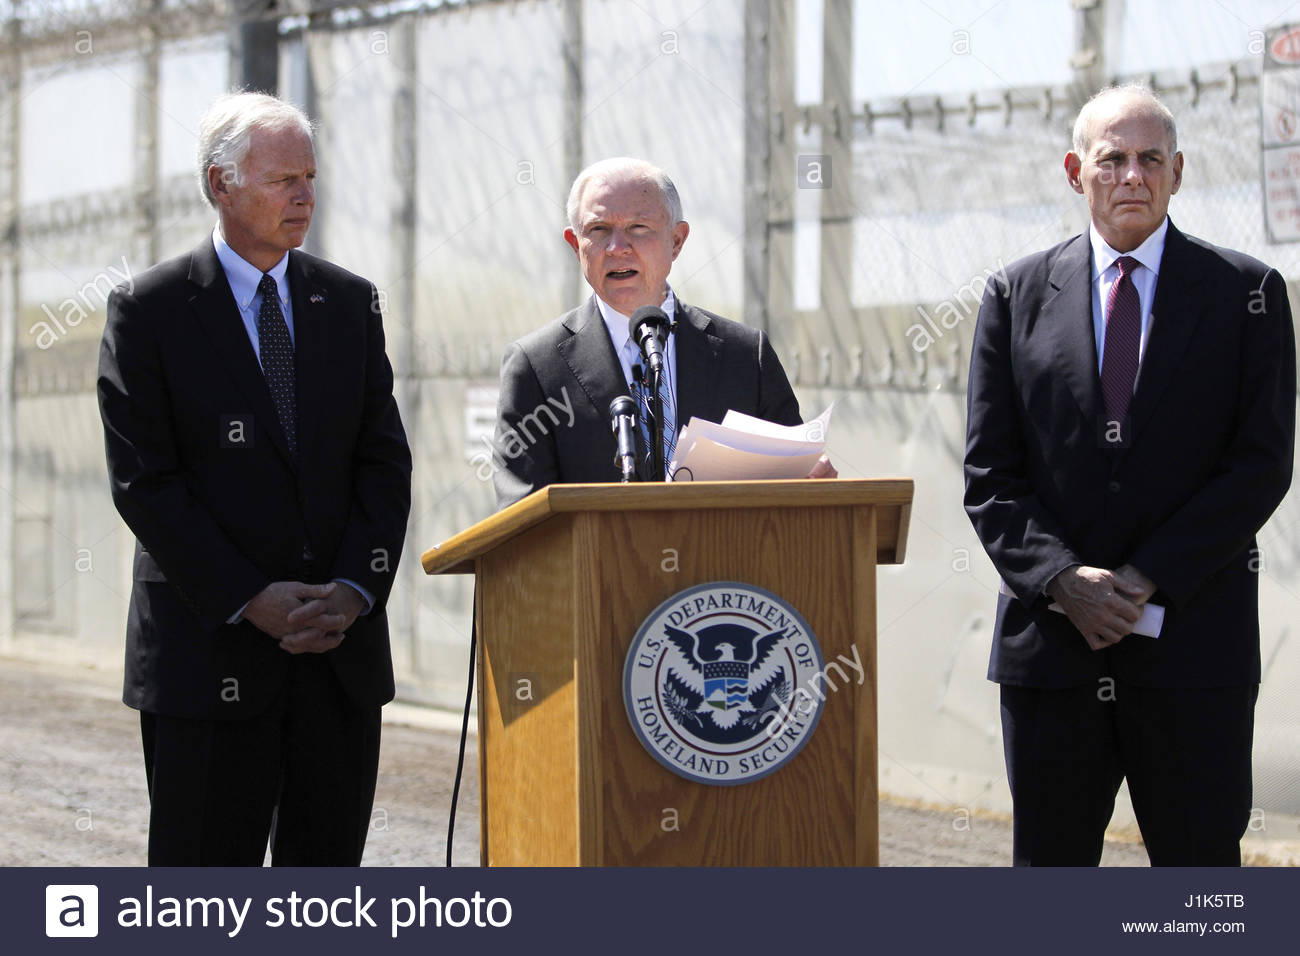 san-ysidro-ca-usa-21st-apr-2017-homeland-security-secretary-john-kelly-J1K5TB